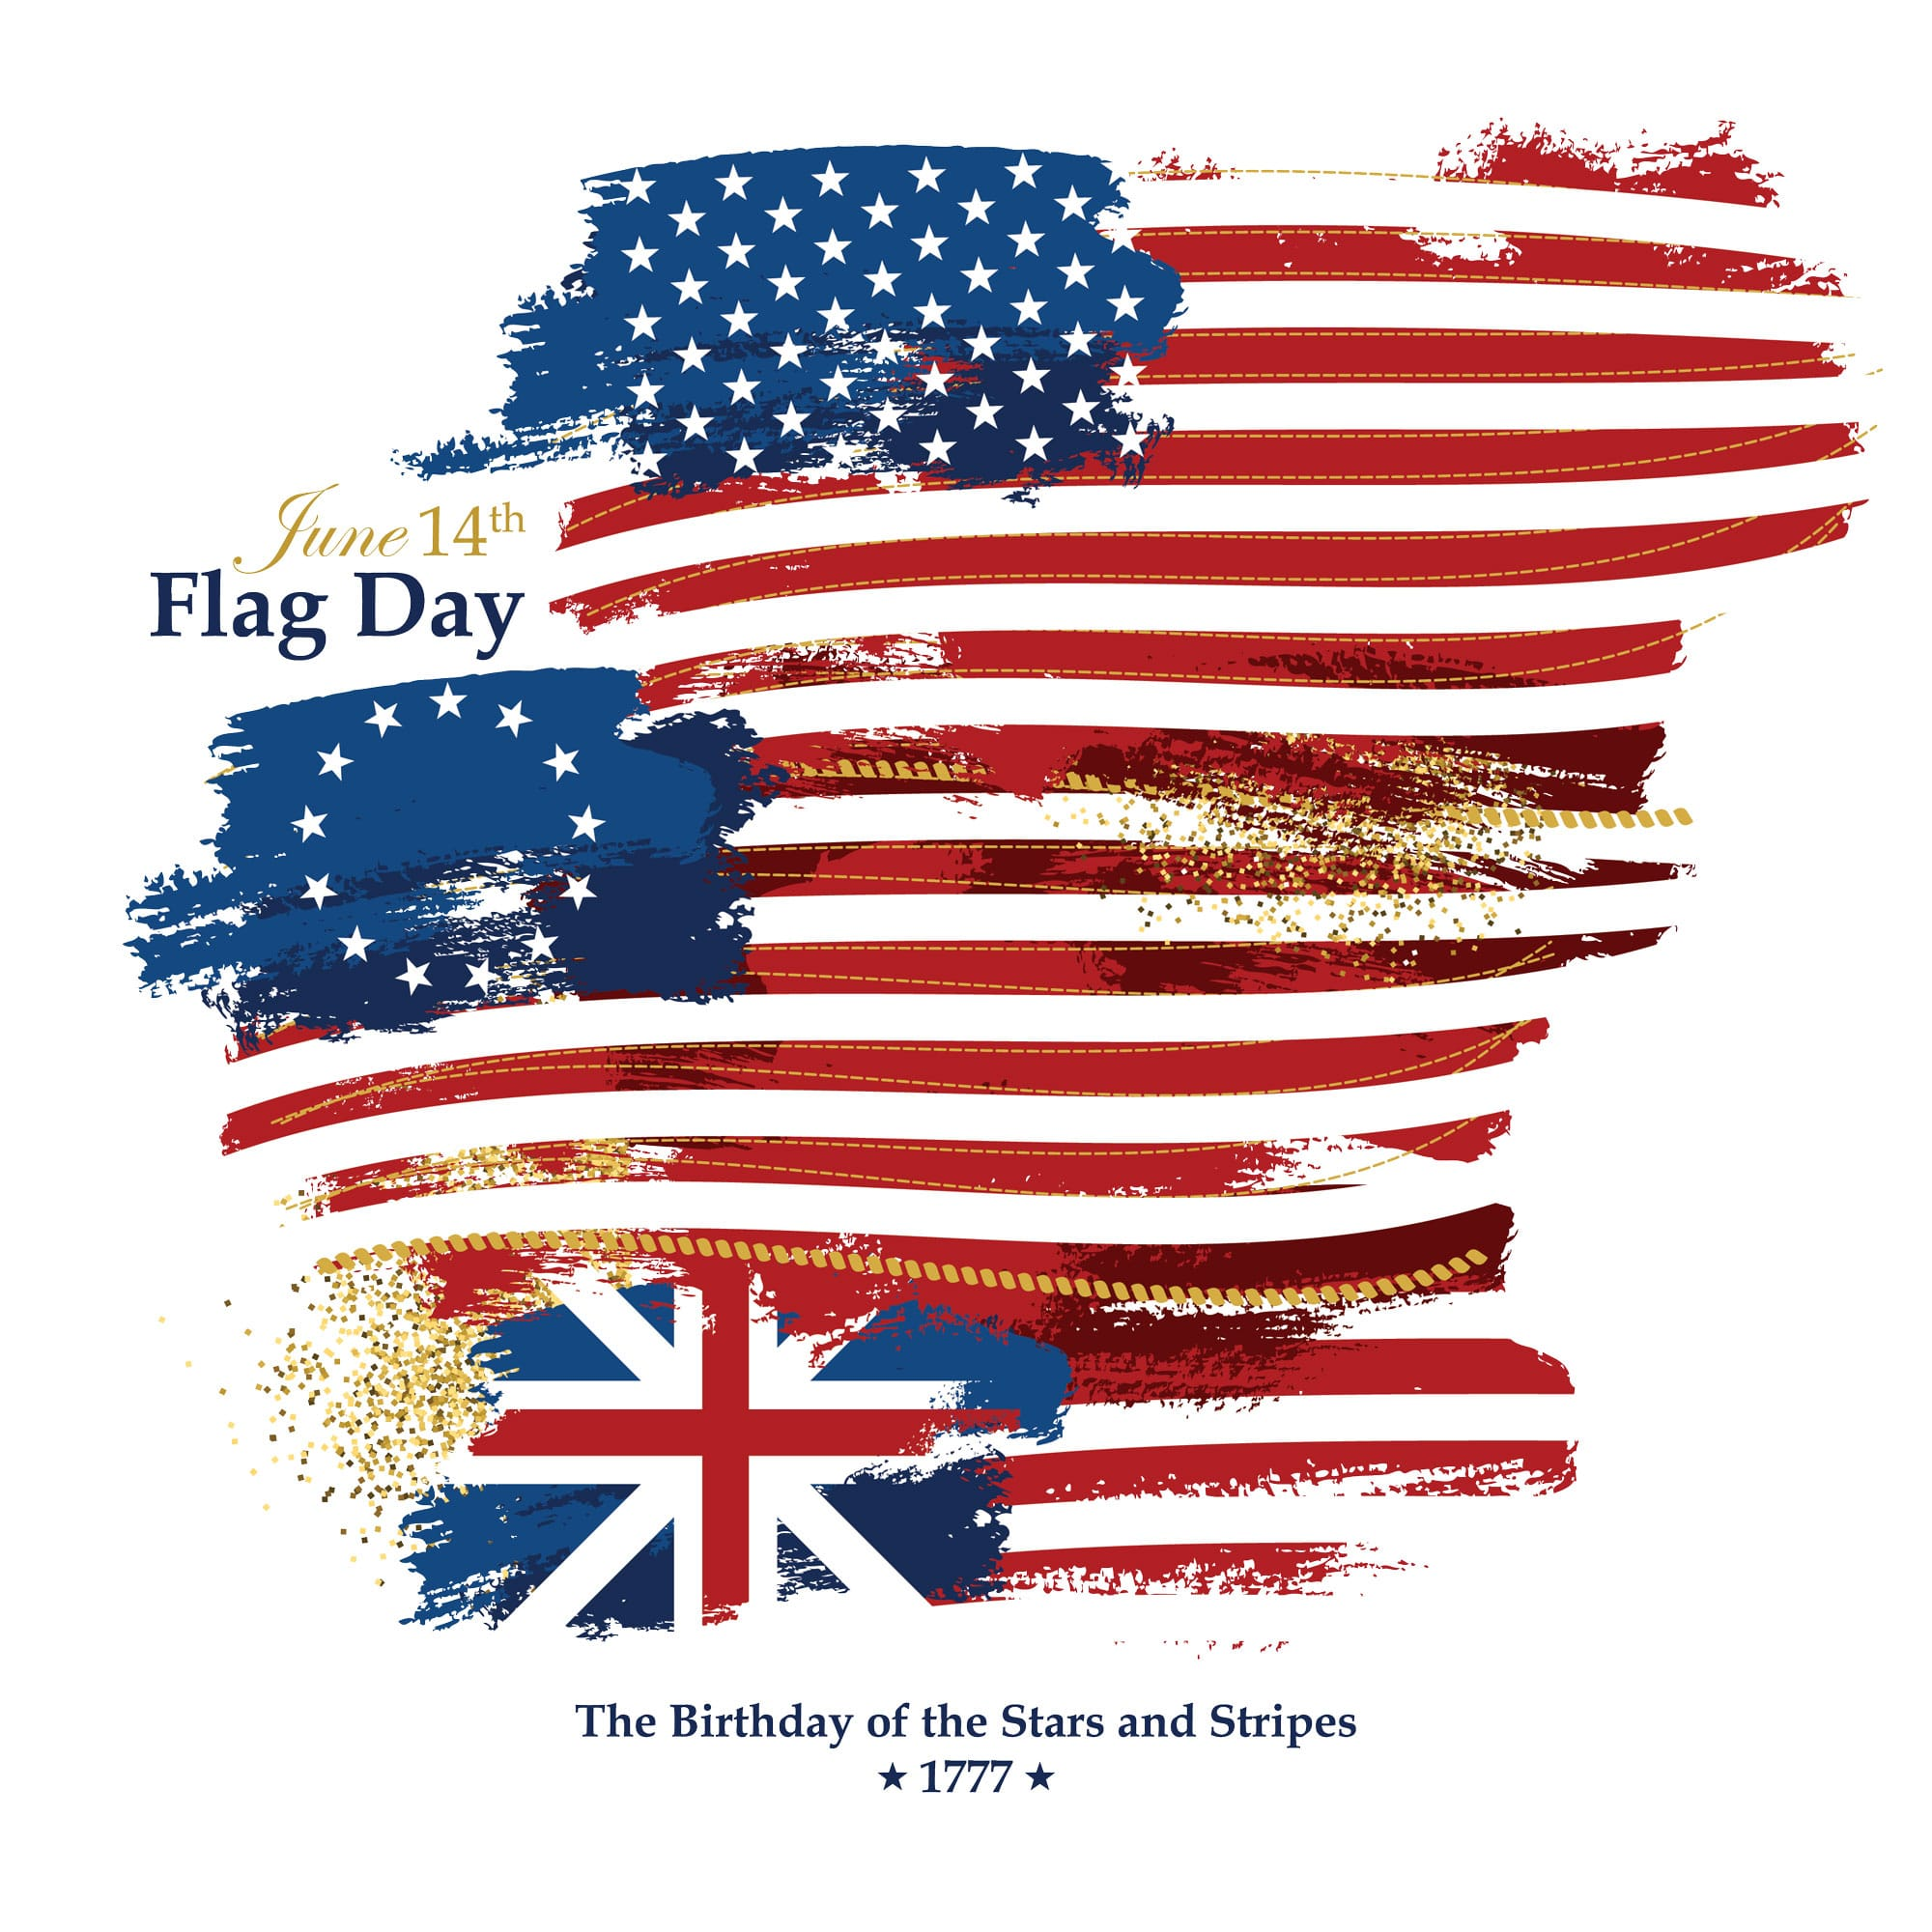 Flag Day: Old Glory's birthday is June 14th. The US officially adopted the Stars and Stripes as the country's national symbol on June 14, 1777.